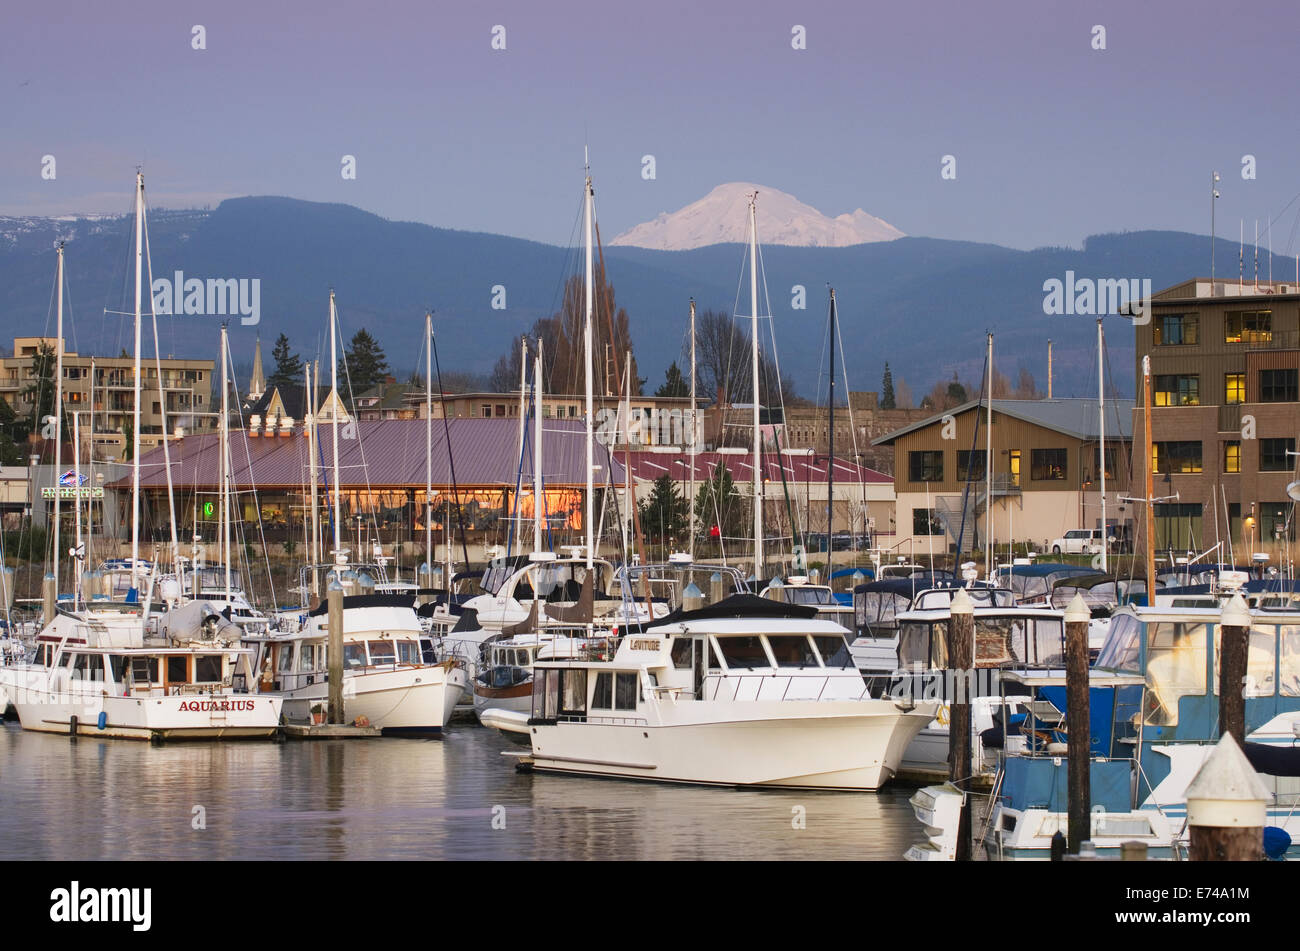 Yachts in the Squalicum Marina at dusk with Mount Baker looming in the backgroun, Bellingham Bay Washington - Stock Image